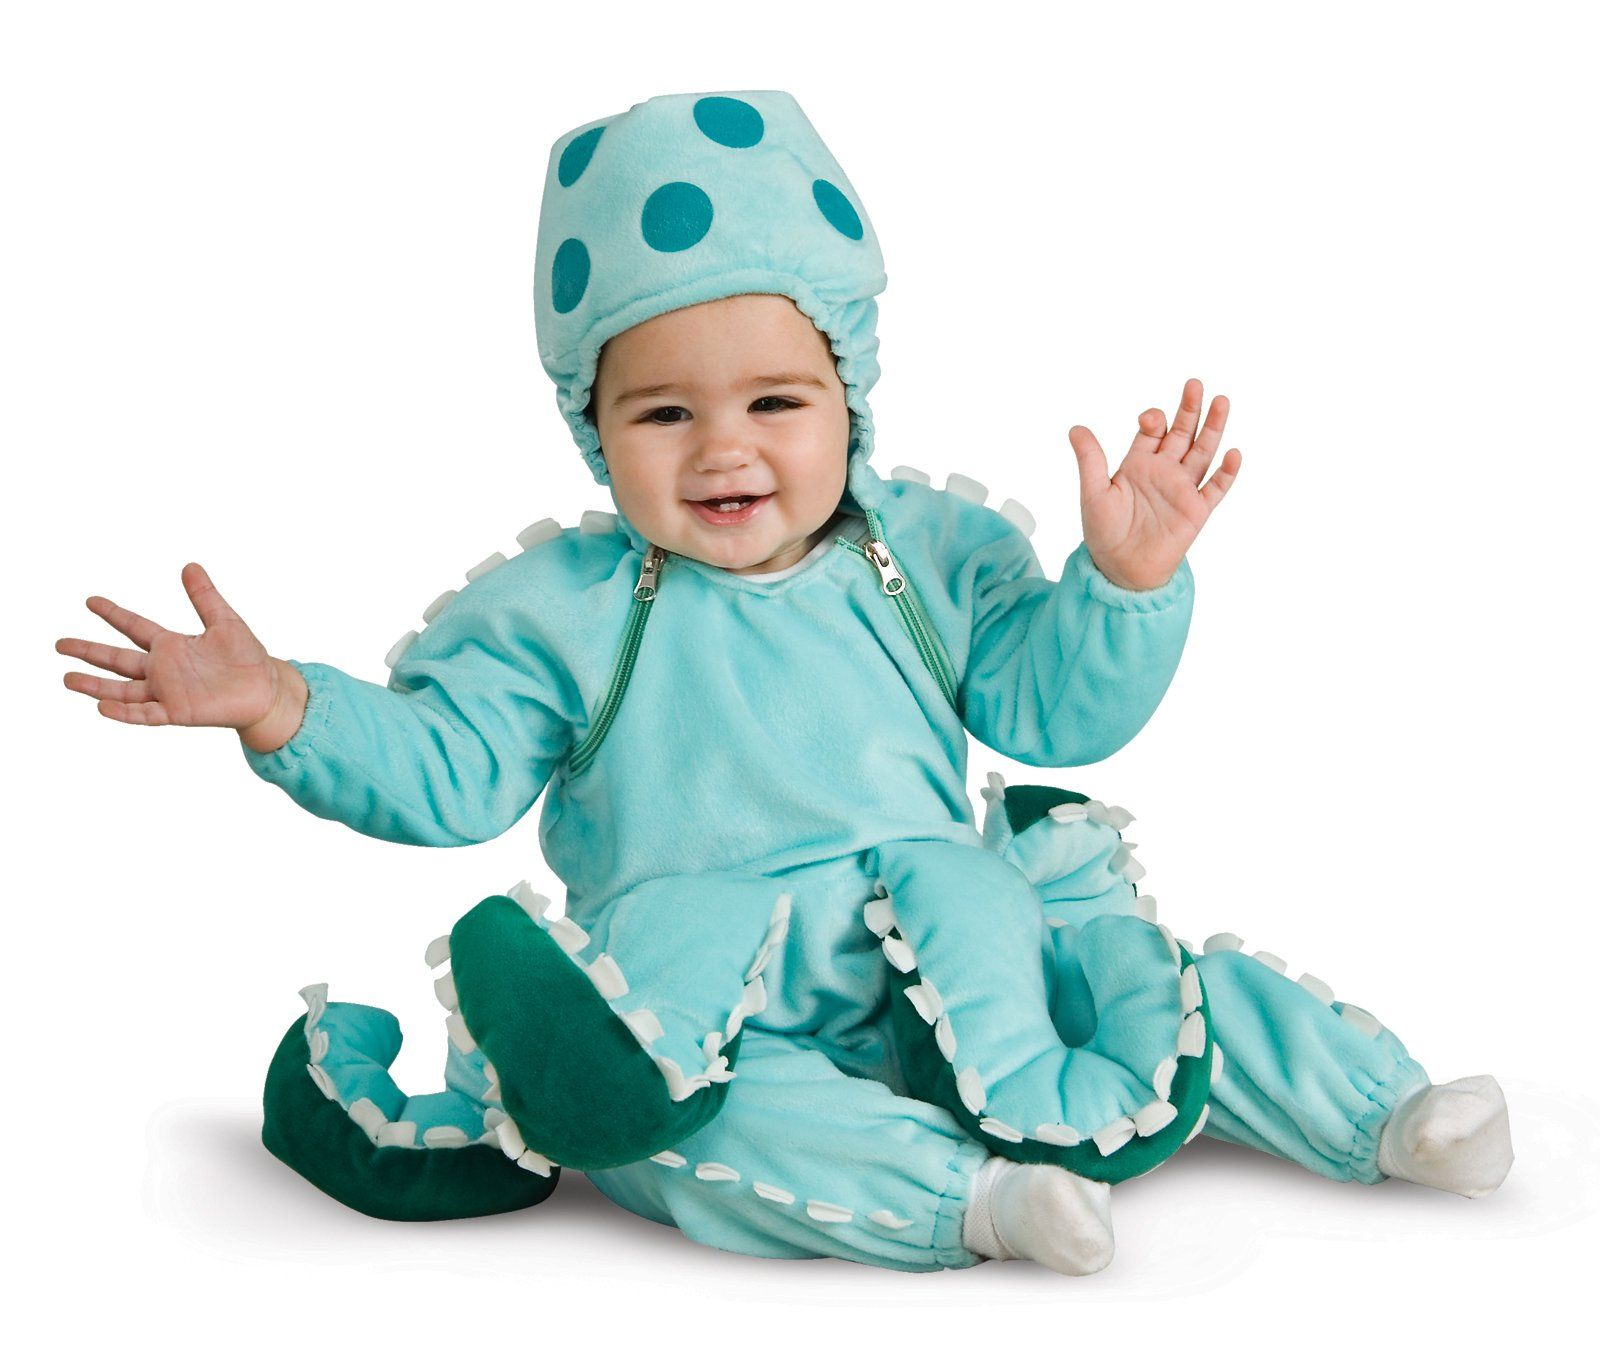 Octopus Infant / Toddler Costume | Toddler costumes, Costumes and ...